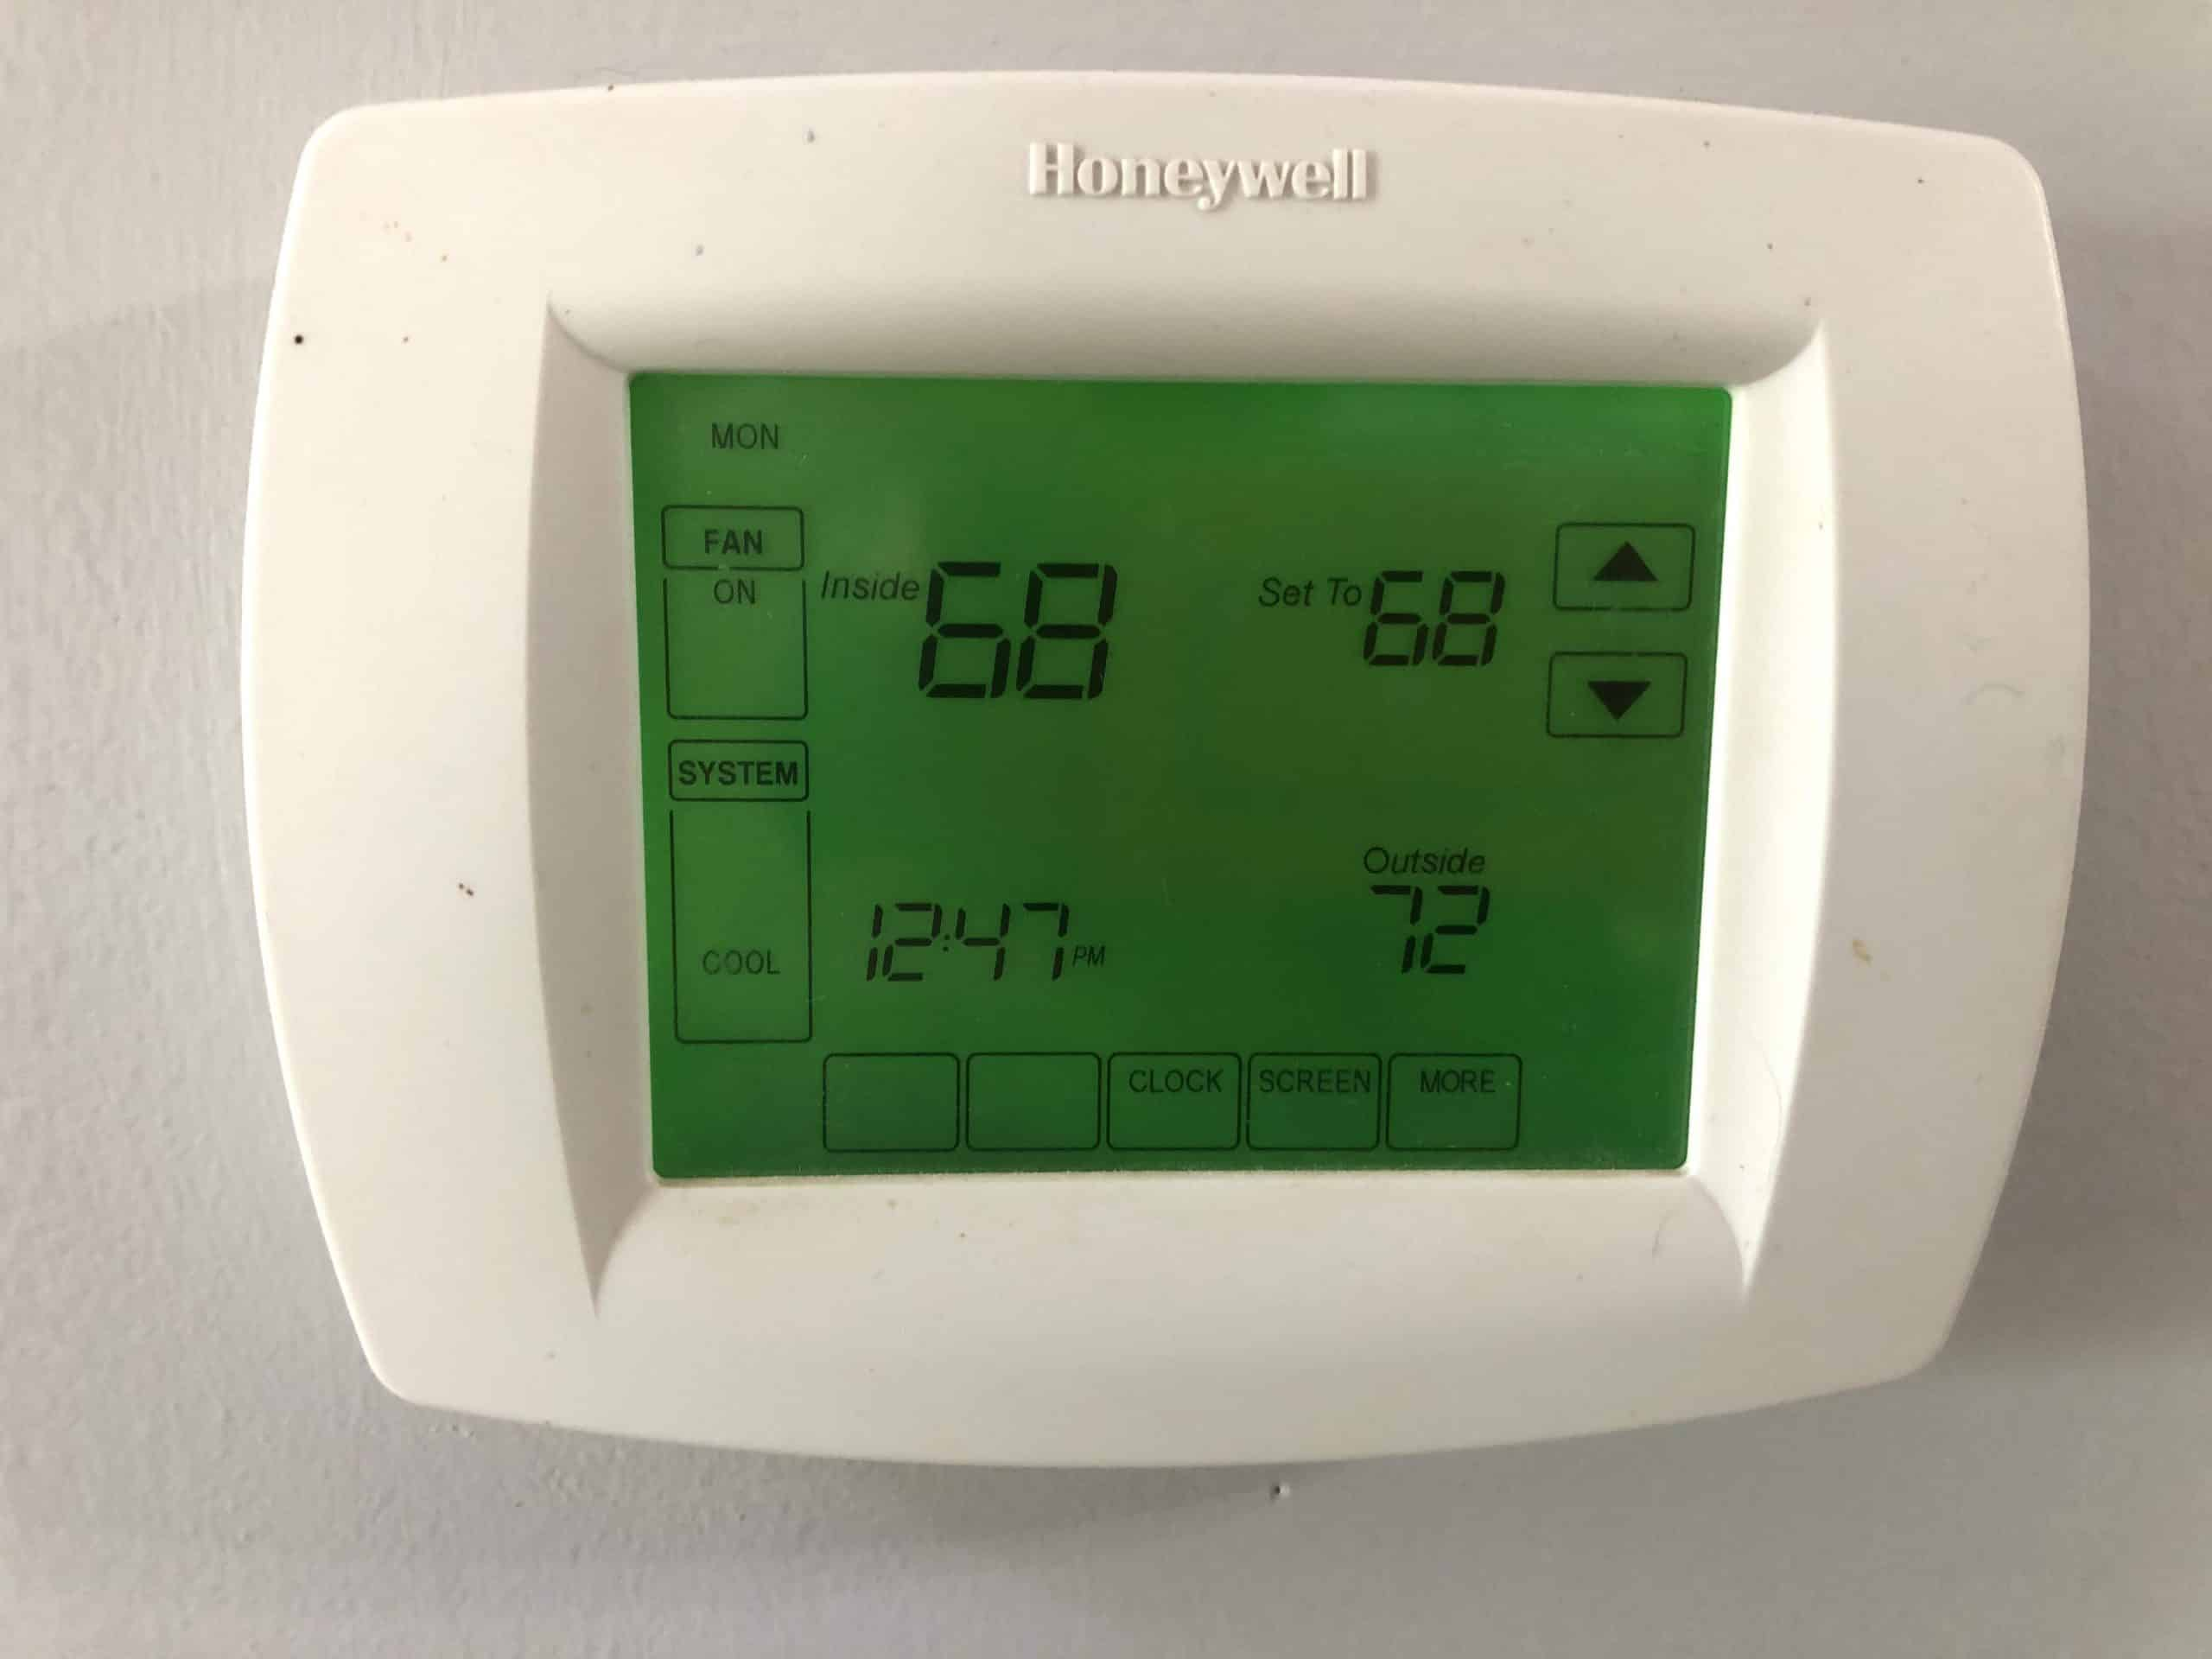 thermostat set to a 68 degrees (F)